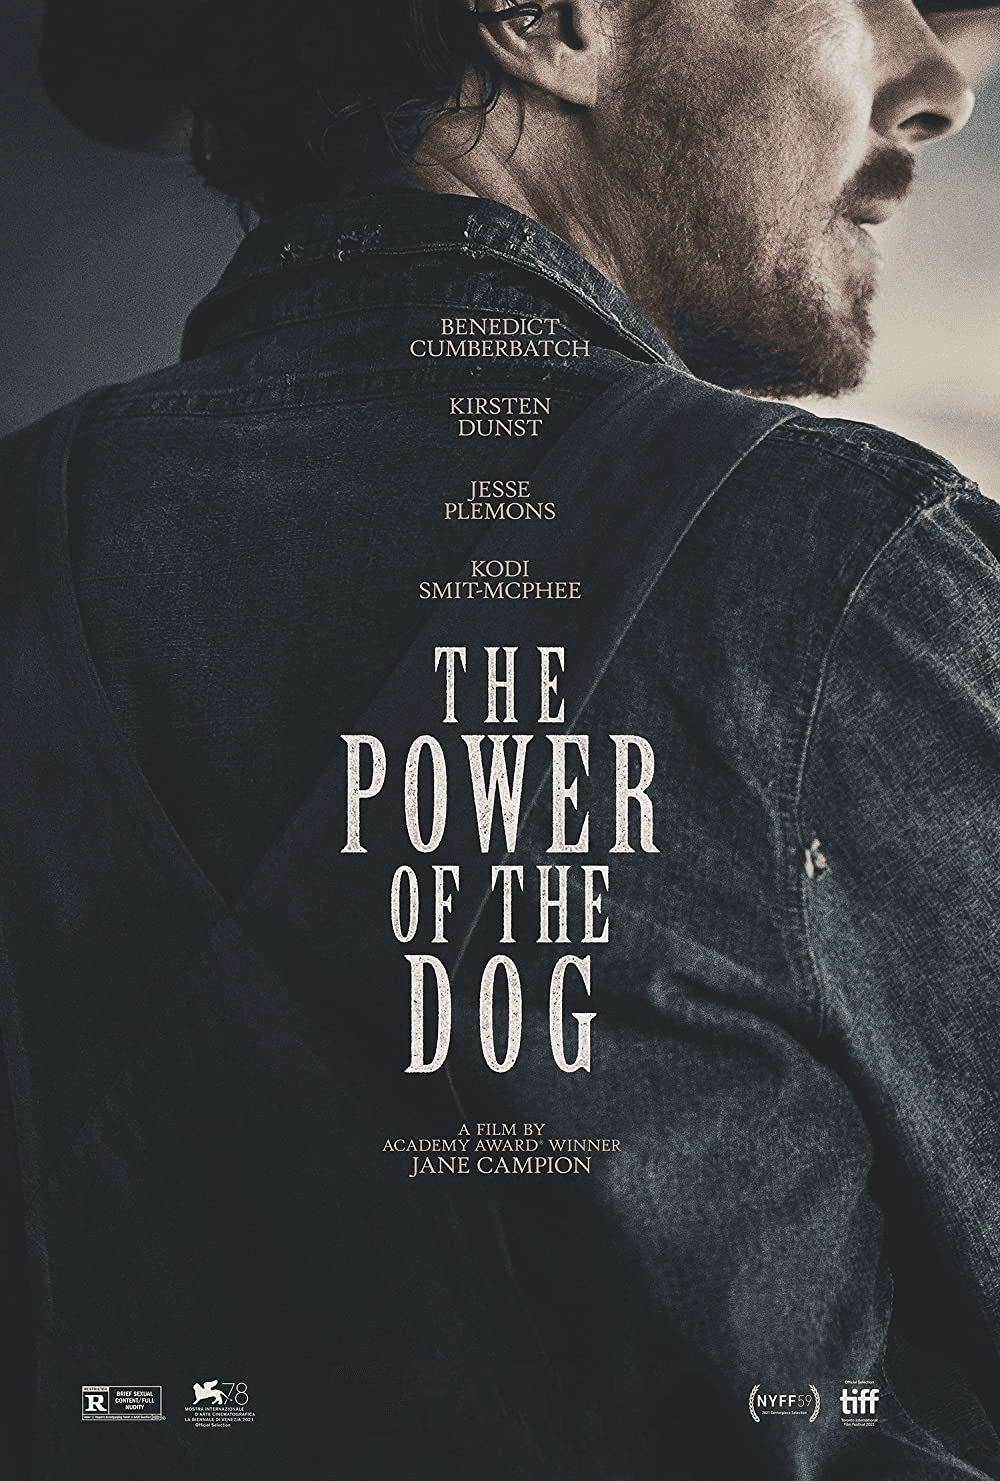 The power of the dog (with French subtitles)